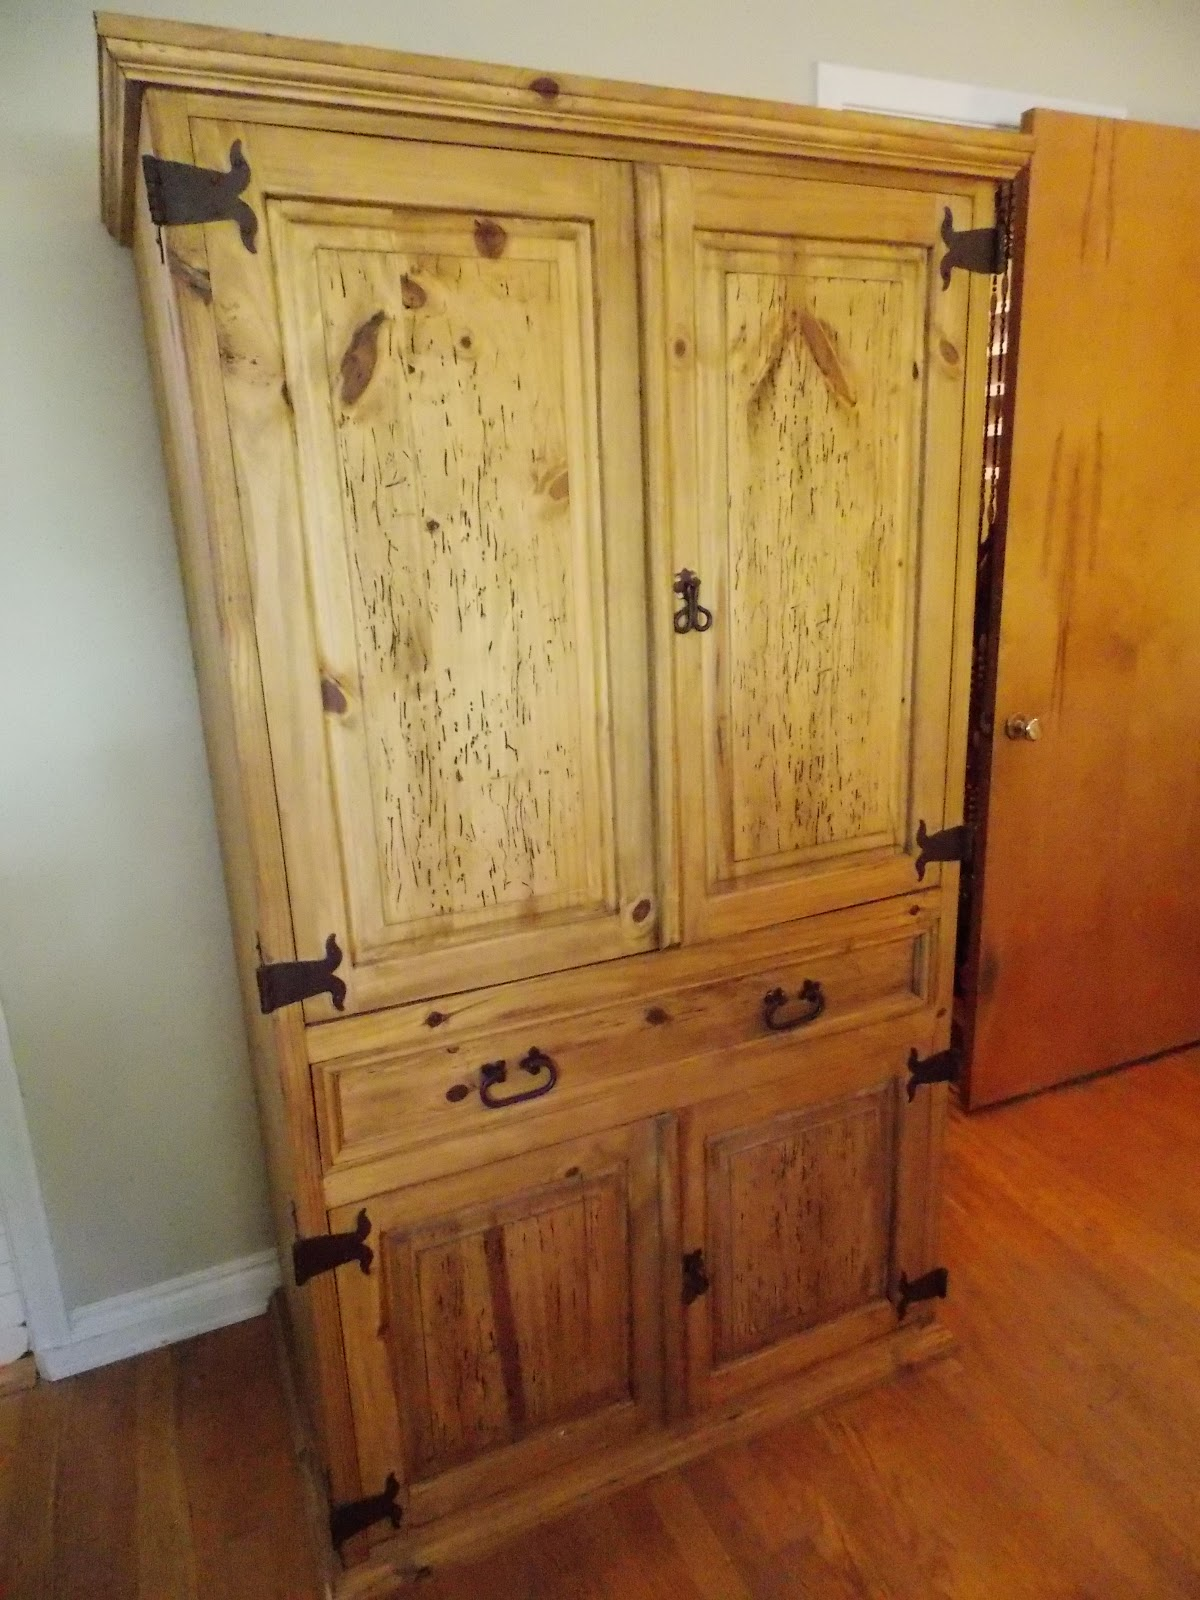 Keep Calm and KERRI On: My Garage Sale Find - an Armoire!